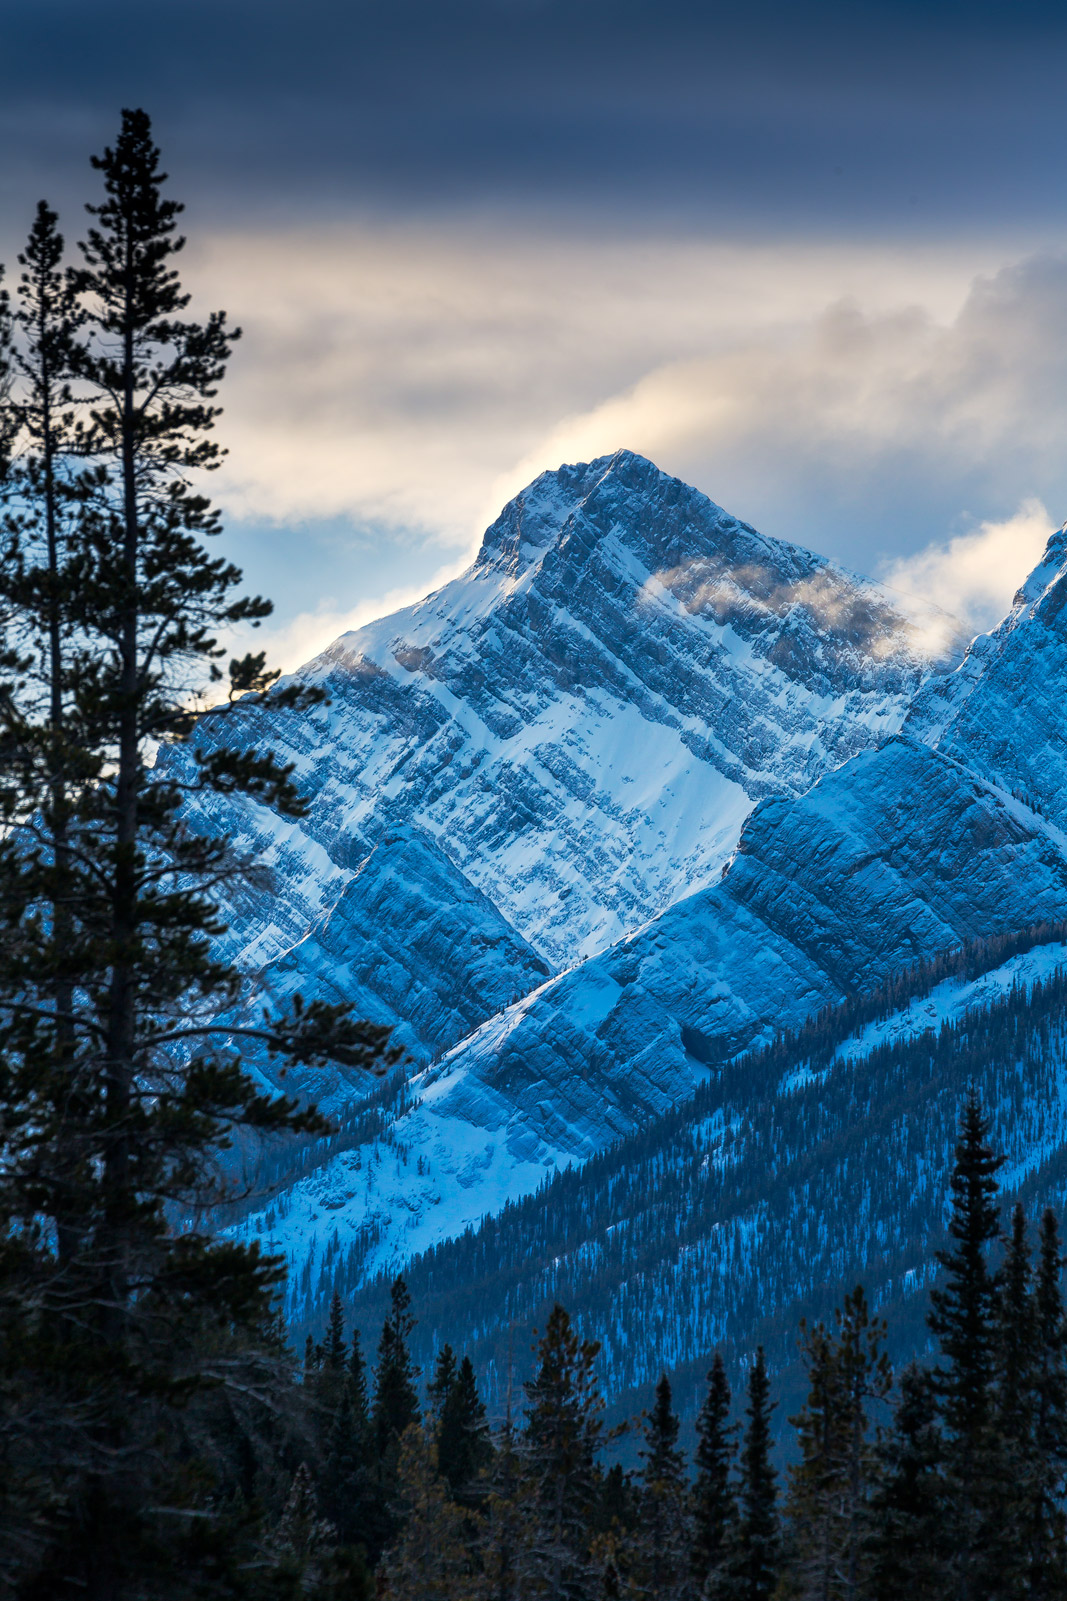 Alberta, Canada, Mountain, Winter, Wind, Snow, Canadian Rockies, limited edition, photograph, fine art, landscape, photo